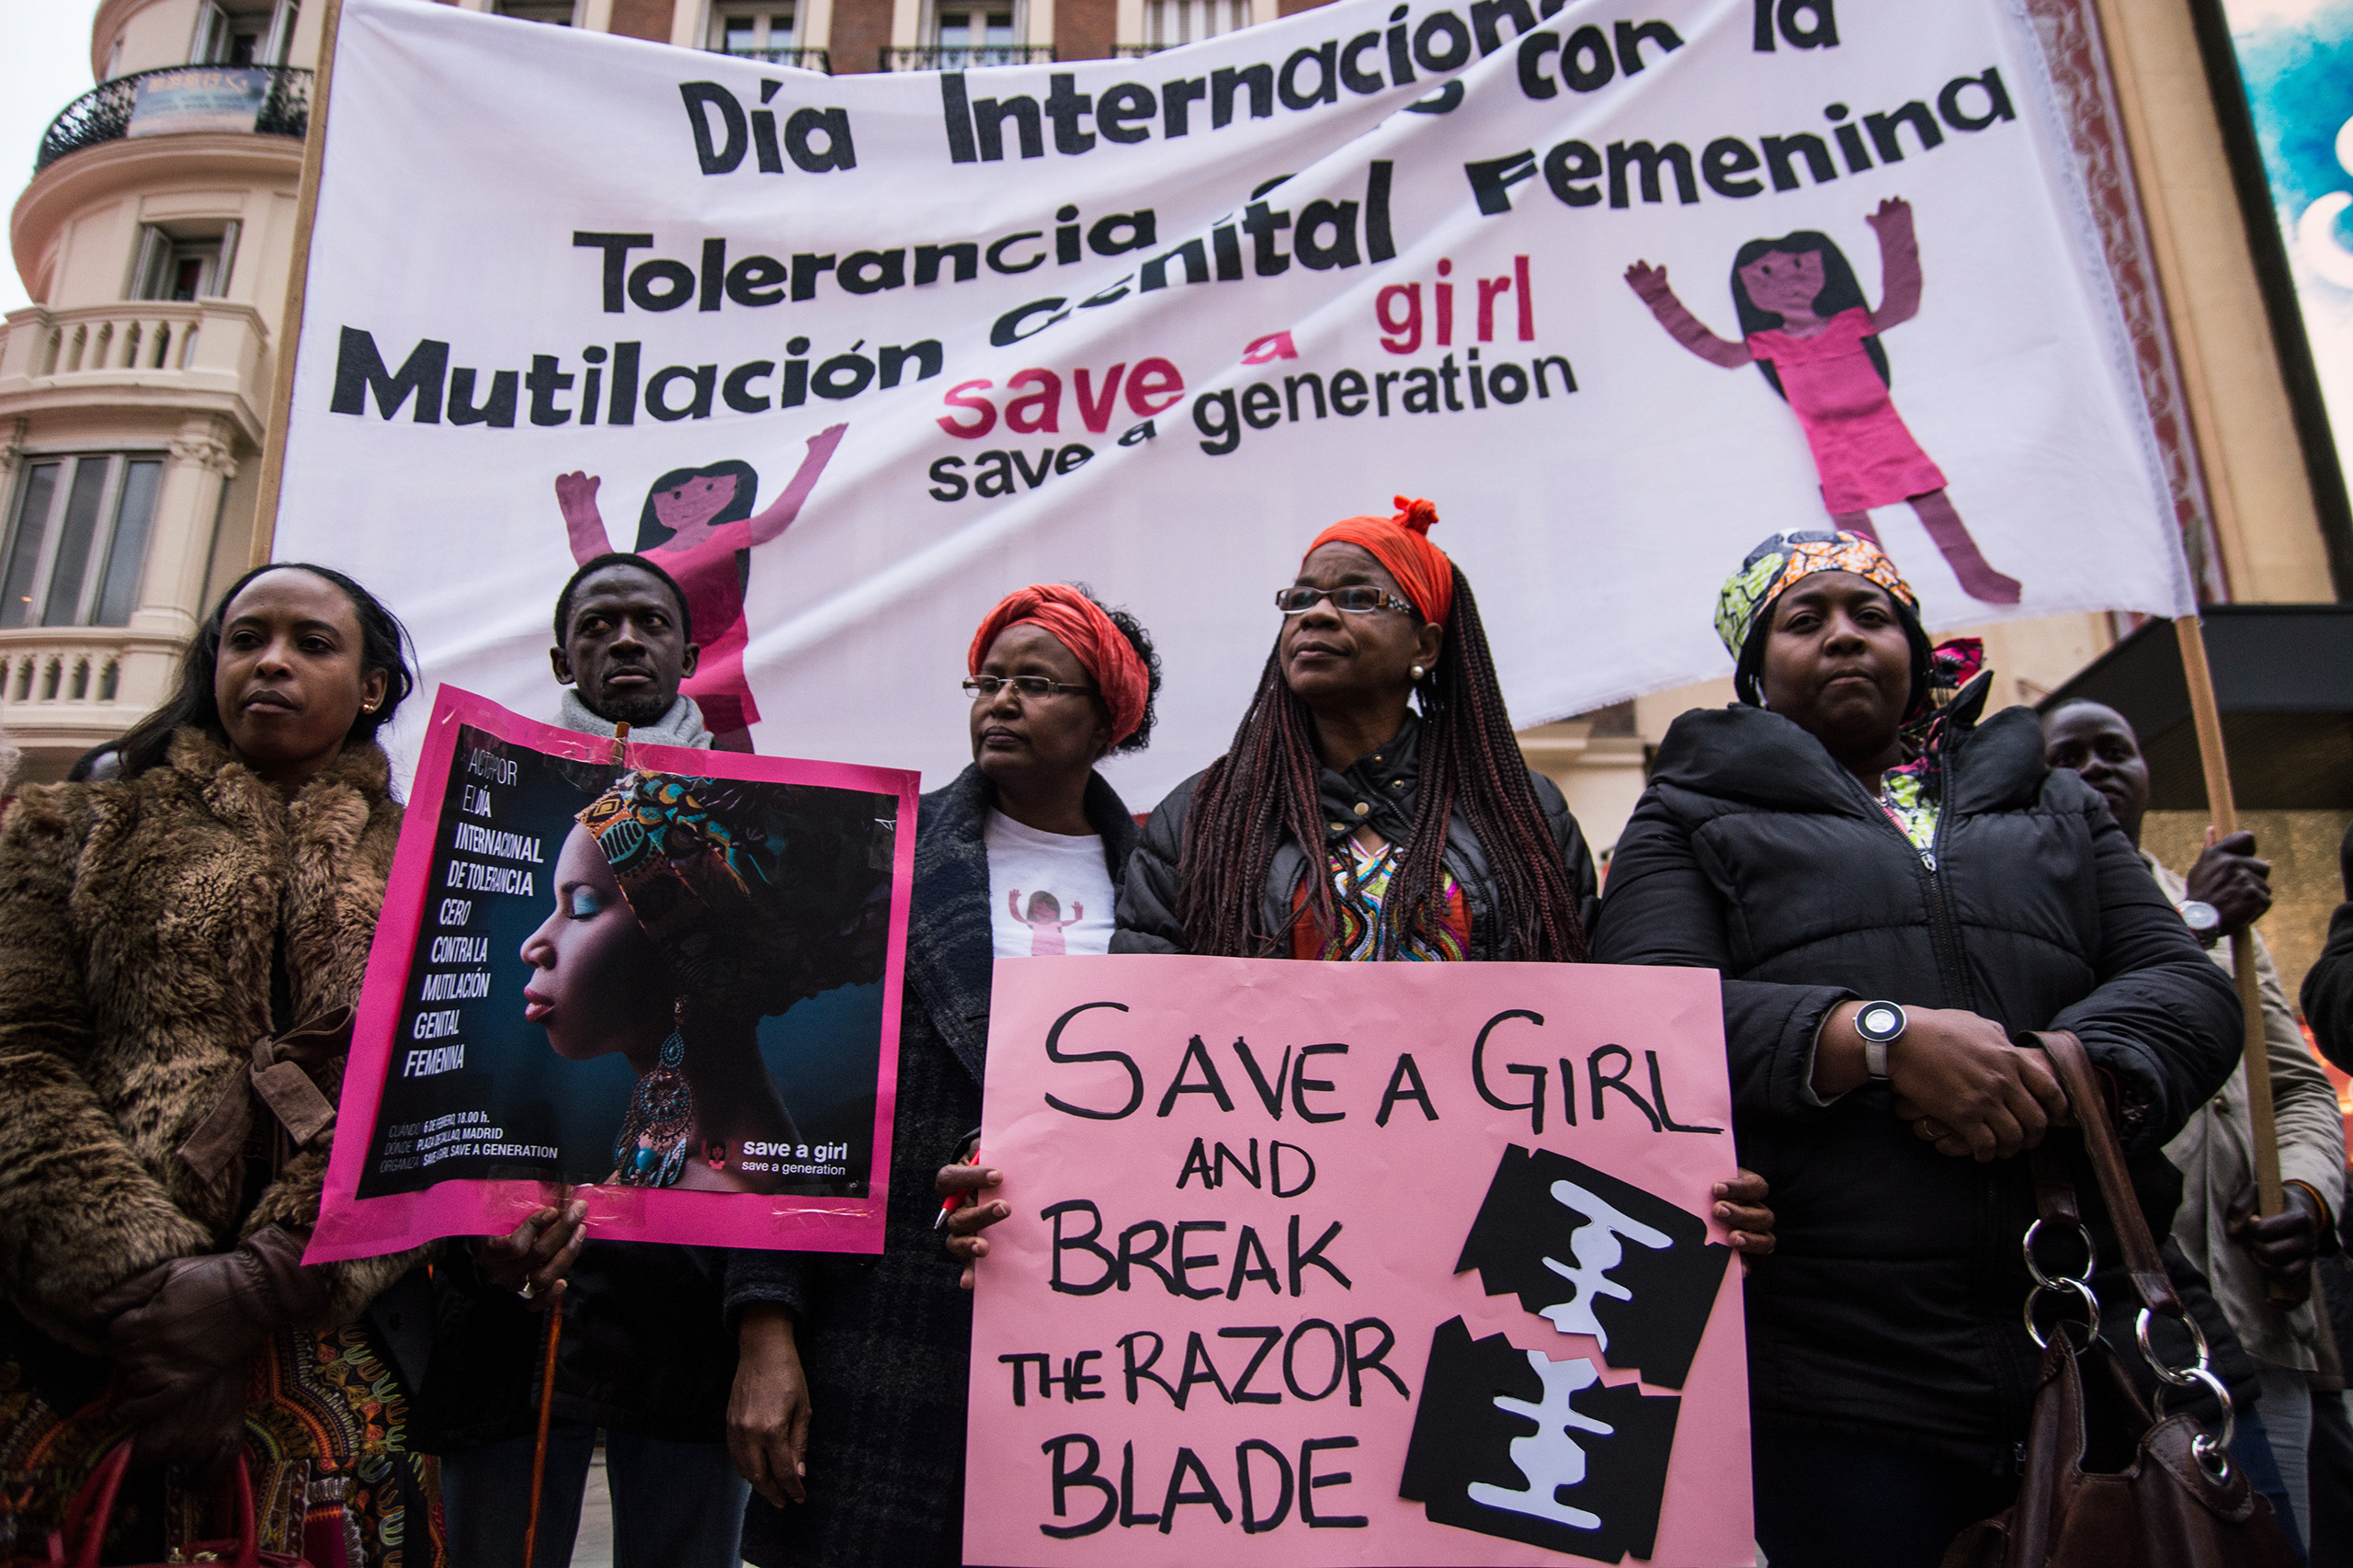 People protest during a rally marking International Day of Zero Tolerance to Female Genital Mutilation in Madrid on Feb. 6, 2016.